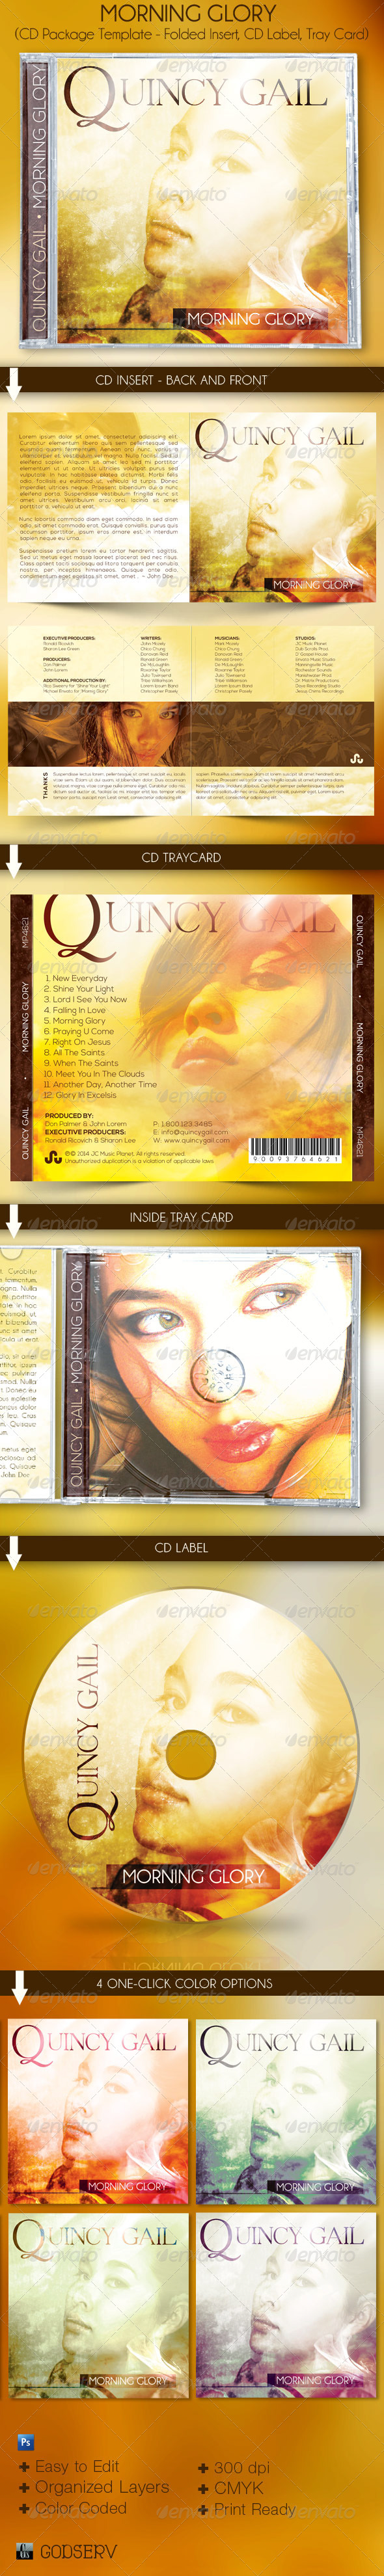 Morning Glory CD Artwork Template - CD & DVD Artwork Print Templates